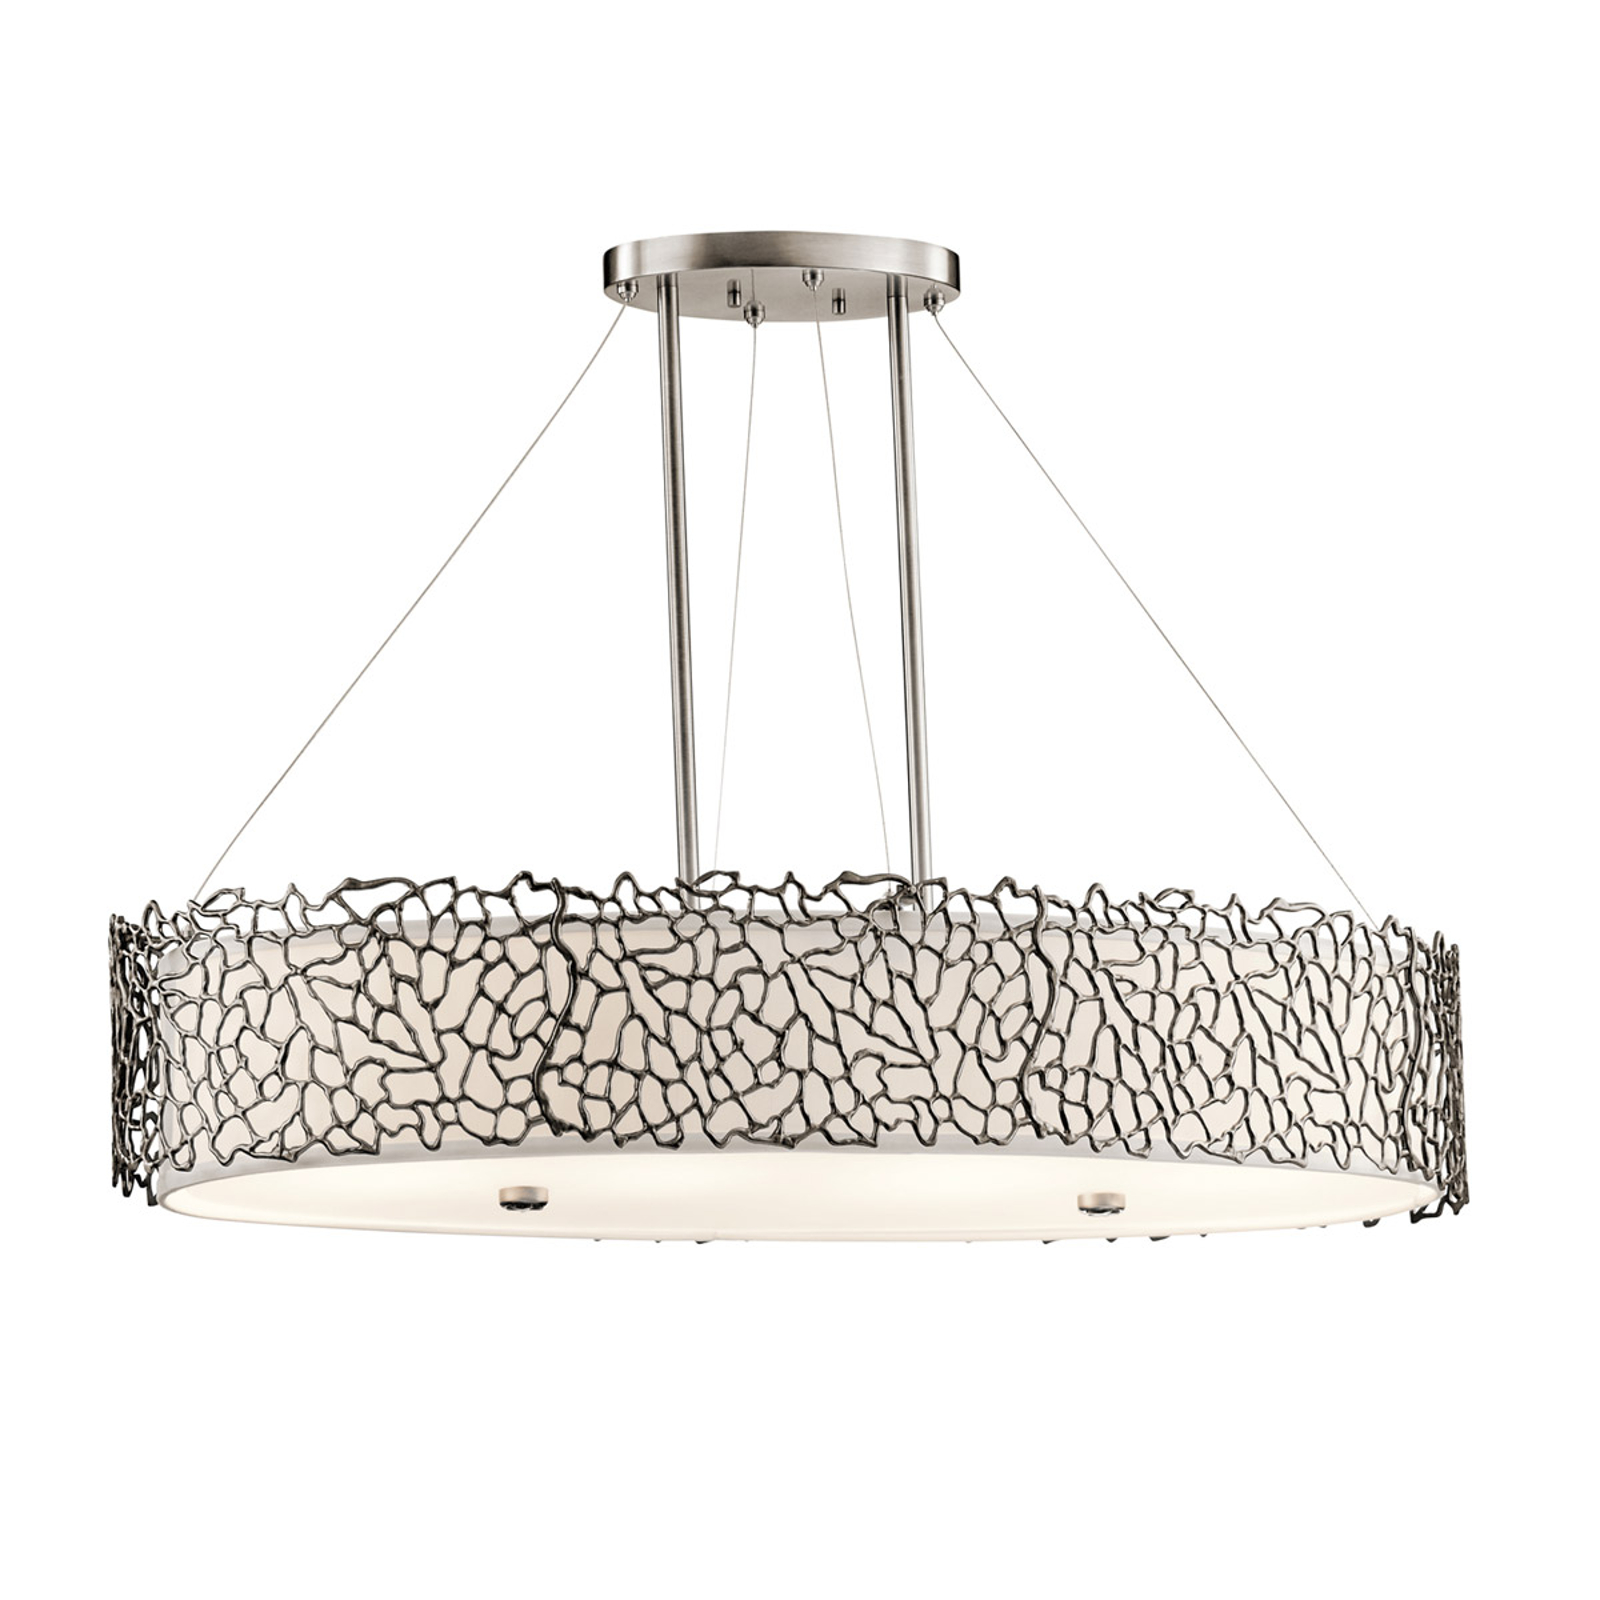 Silver Coral oval pendant light_3048281_1